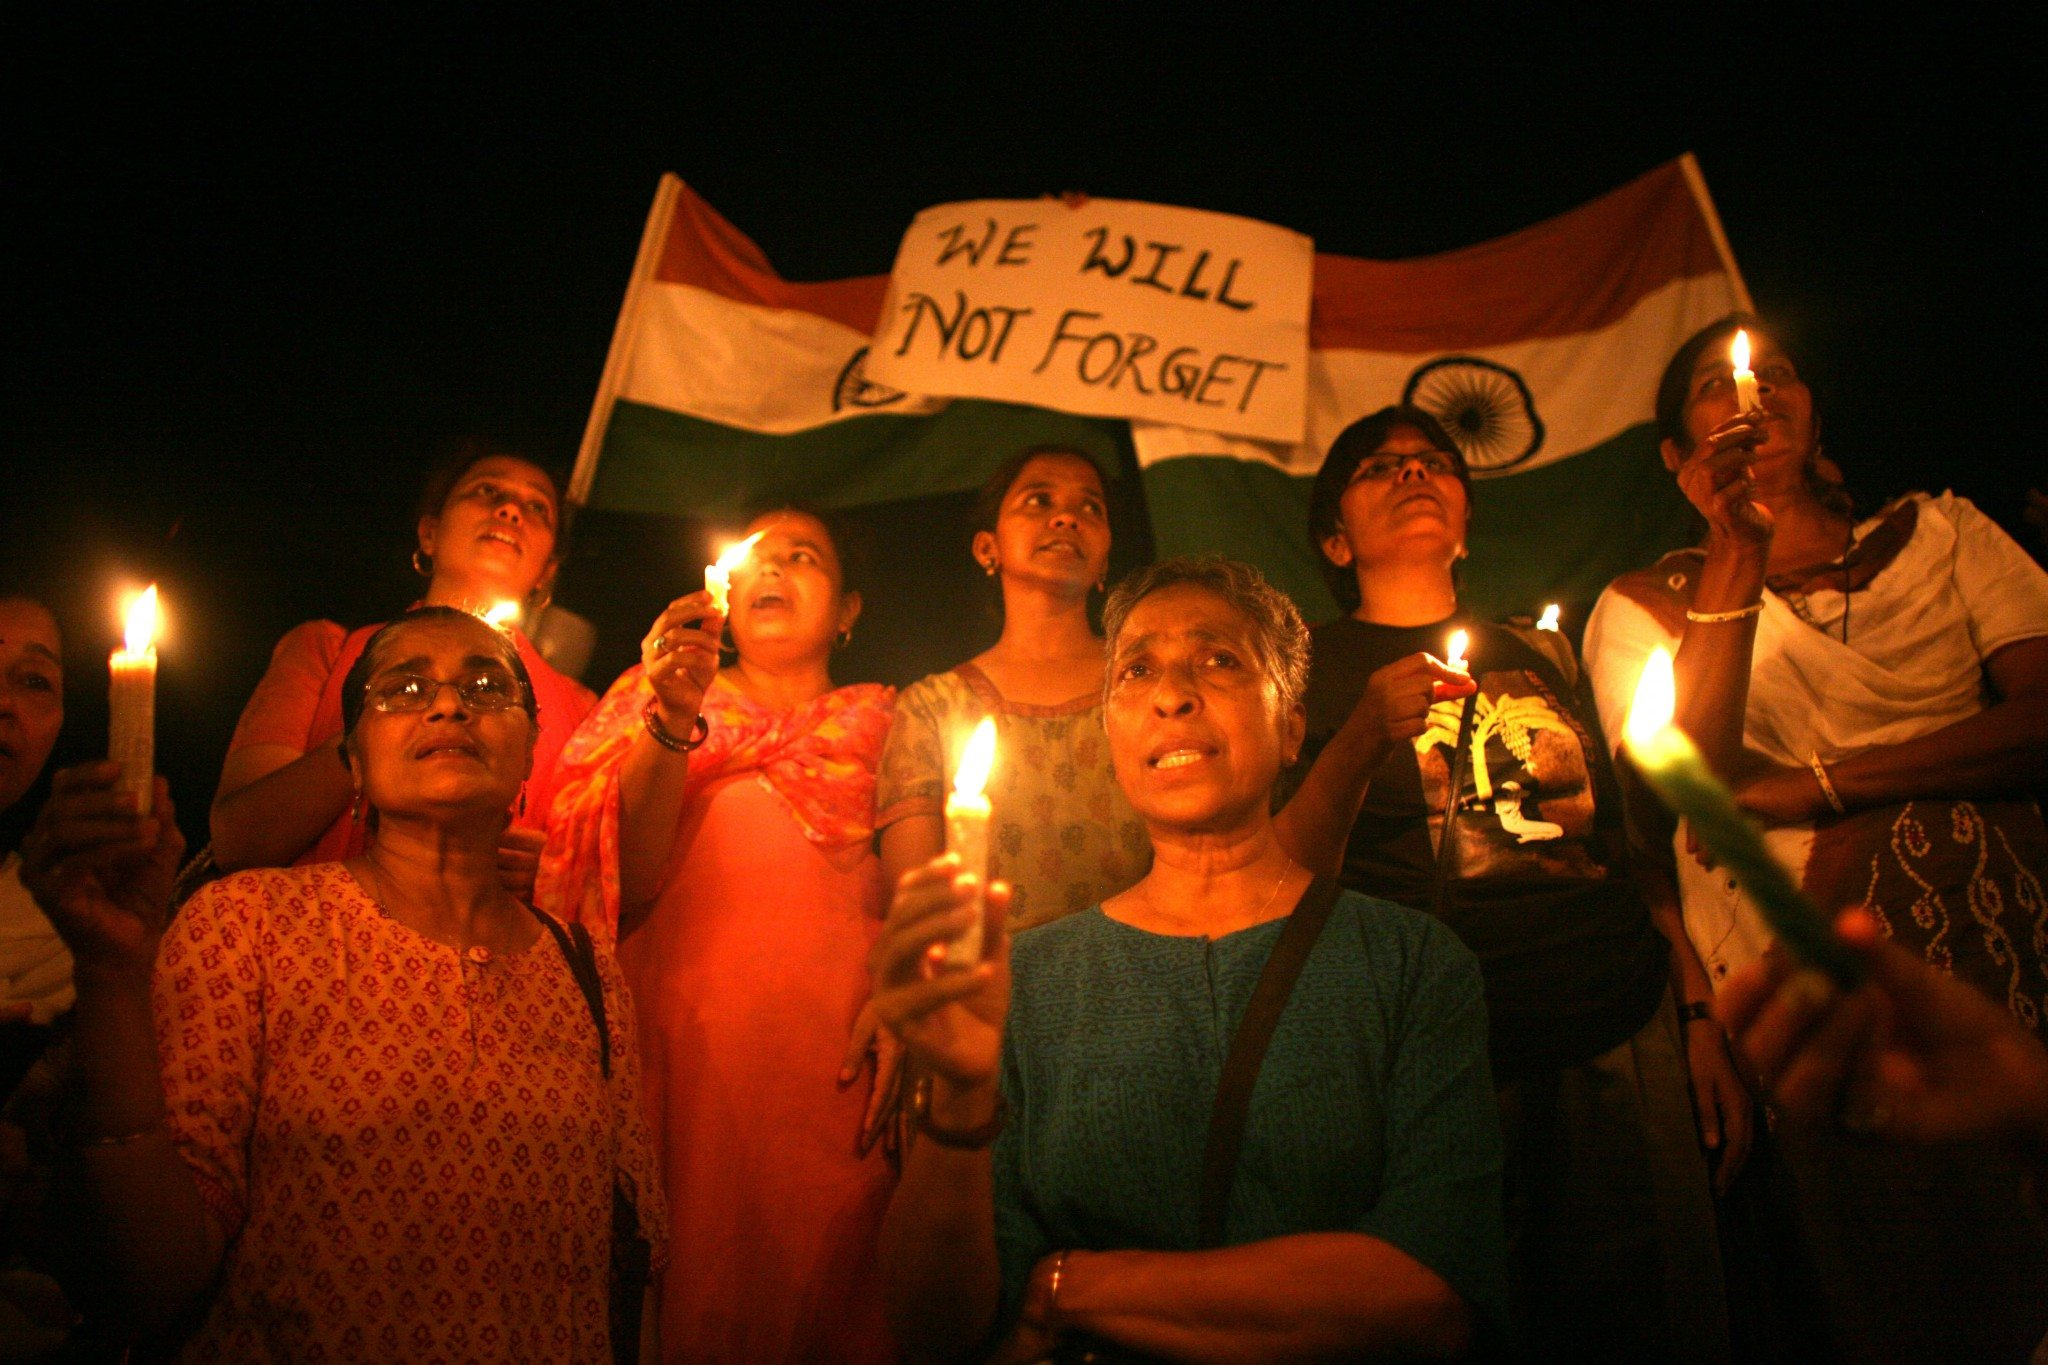 "MUMBAI (BOMBAY), INDIA - NOVEMBER 30: (ISRAEL OUT) Mumbai Residents attend a candlelit vigil in the street near The Oberoi Hotel following a demonstration against the recent terror attacks in the city on November 30, 2008 in Mumbai, India. Indian Home Minister Shivraj Patil today submitted his resignation claiming ""moral responsibility"" following the Mumbai terror attacks. The city of Mumbai was rocked by multiple coordinated terrorist attacks that targeted locations popular with foreigners, late on November 26, killing nearly 200 people. (Photo by Uriel SinaiGetty Images)"